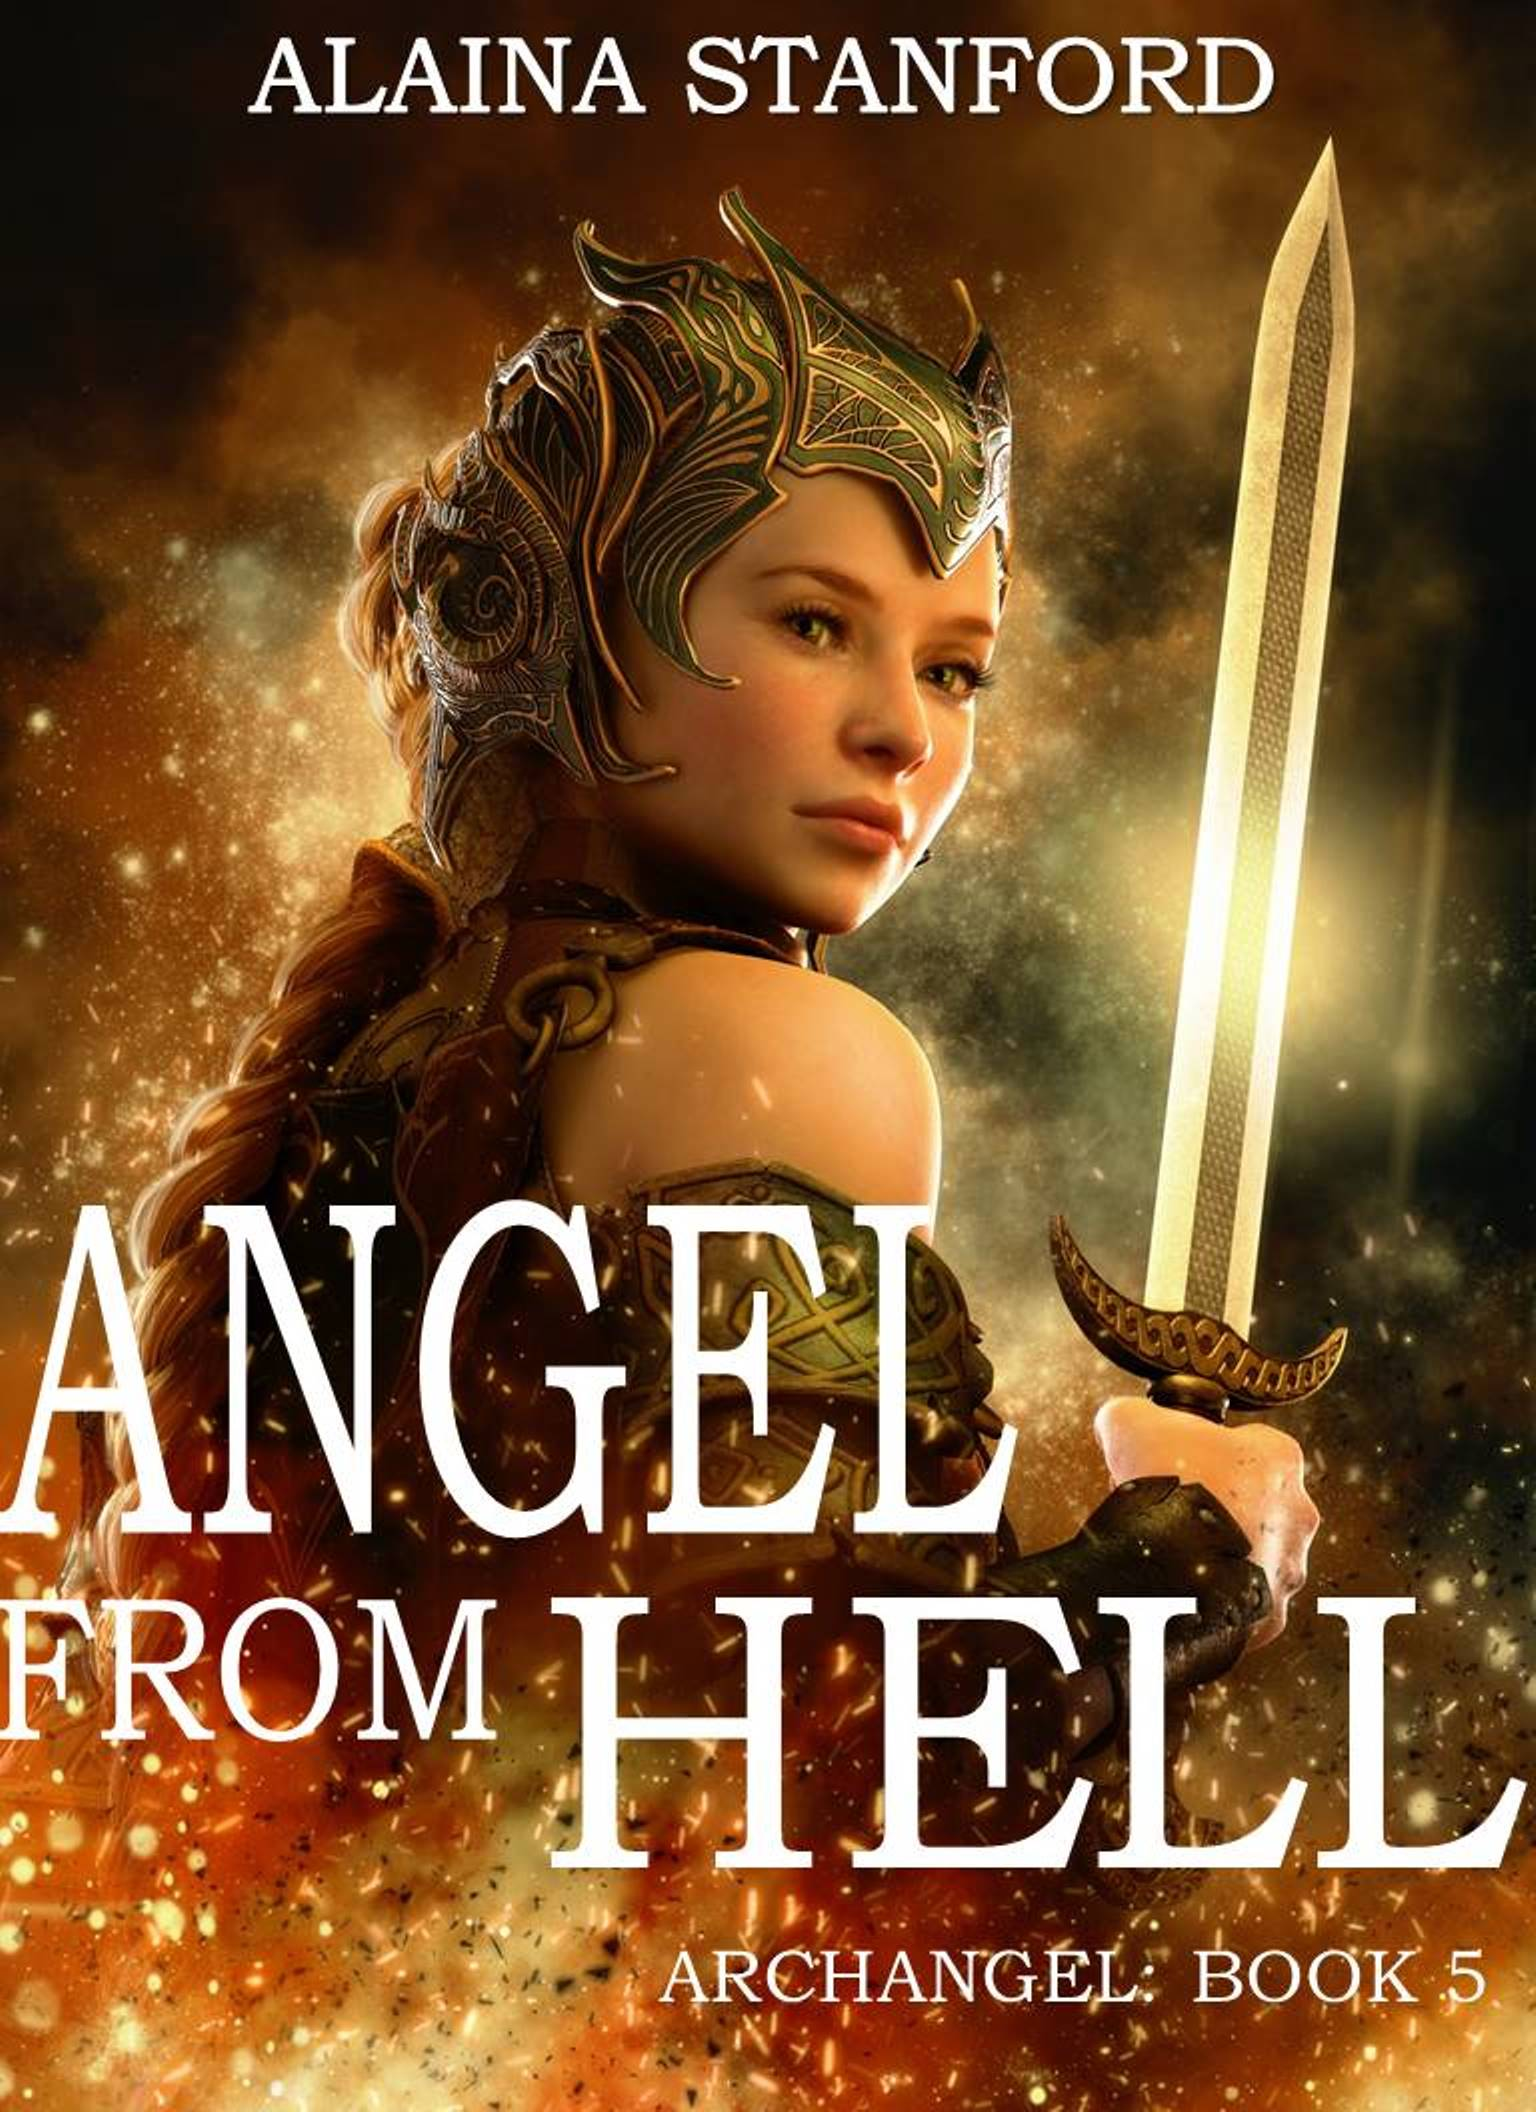 Angel From Hell, Archangel Book 5--- Coming August 2017  Is she too beautiful to be evil?  O'liv'et lost her wings in the Great War after she chose to follow Lucifer. It was the only mistake she ever made and it earned her an eternal place in the lake of fire. Lucifer was no more. Once he and all his followers were cast out of heaven, Lucifer' could no longer hide the evil inside.Slowly over a millennia O'livet watched in horror as Lucifer transformed into Satan, the King of Hell.Only then did she realize Lucifer had not only betrayed God, but all of his followers as well. He was not Gods equal, he could never be. There was no new Garden of Eden waiting for them beyond God's reach as he had promised. One day in deep despair O'livet crawled out of the pit of hell and stood at the edge of the chasm that separated them from heaven. She fell to her knees and dared to pray to be shown the path to redemption. A vision flashed across the sky before her of a young man with coal black hair and dark brown eyes. The wind whispered his name and her breath caught in her throat. Suddenly everything became clear.